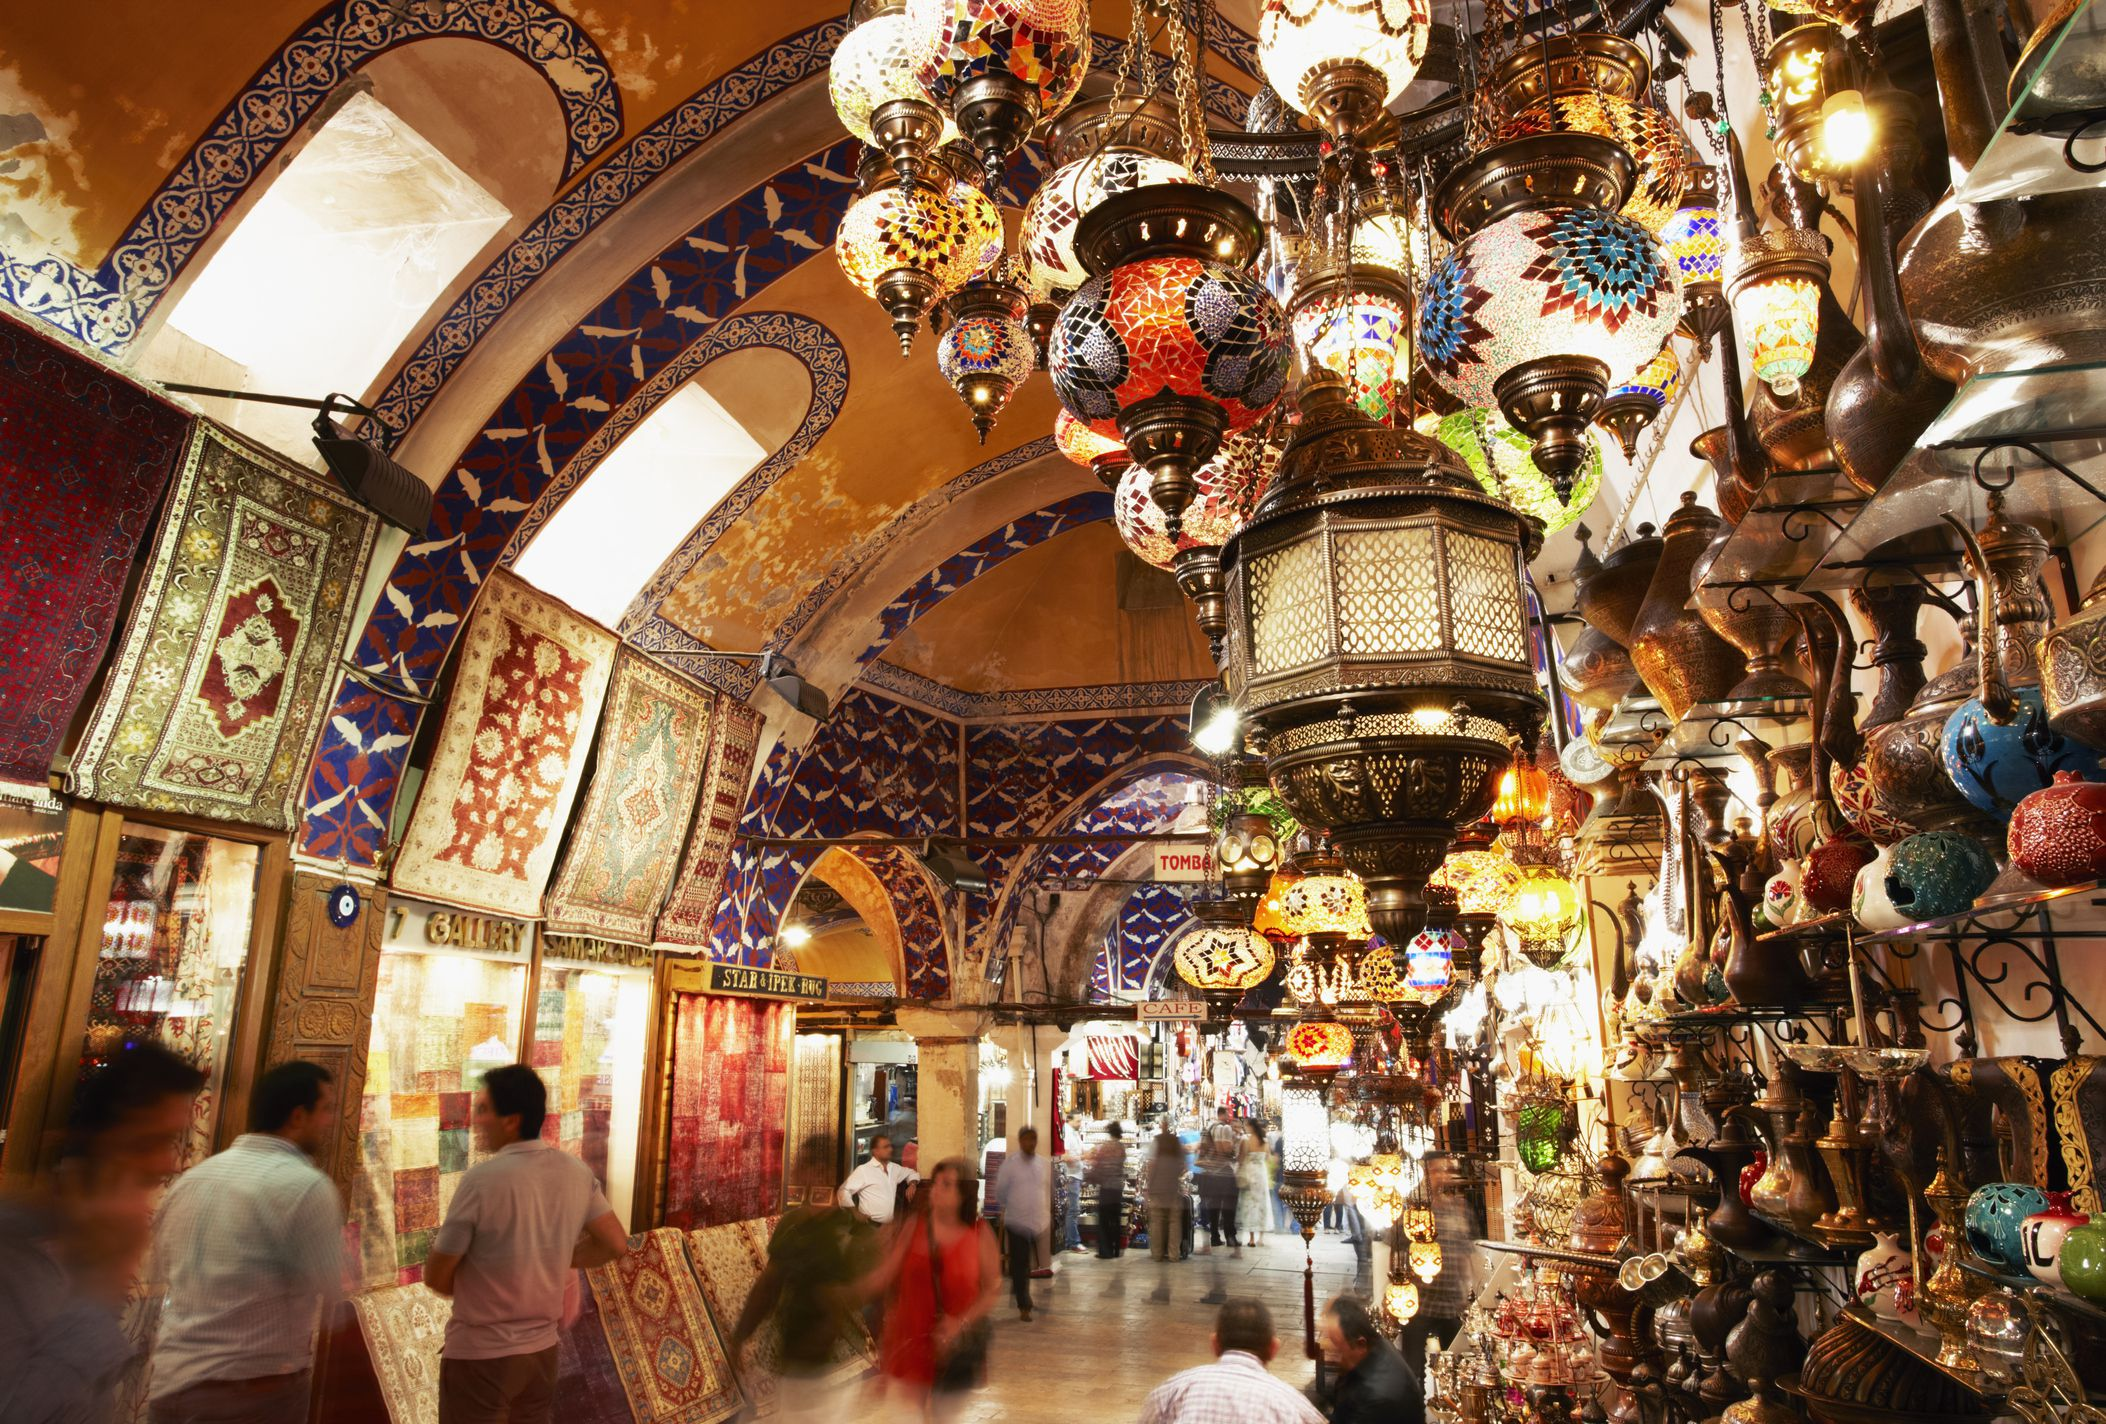 People shopping in The Grand Bazaar